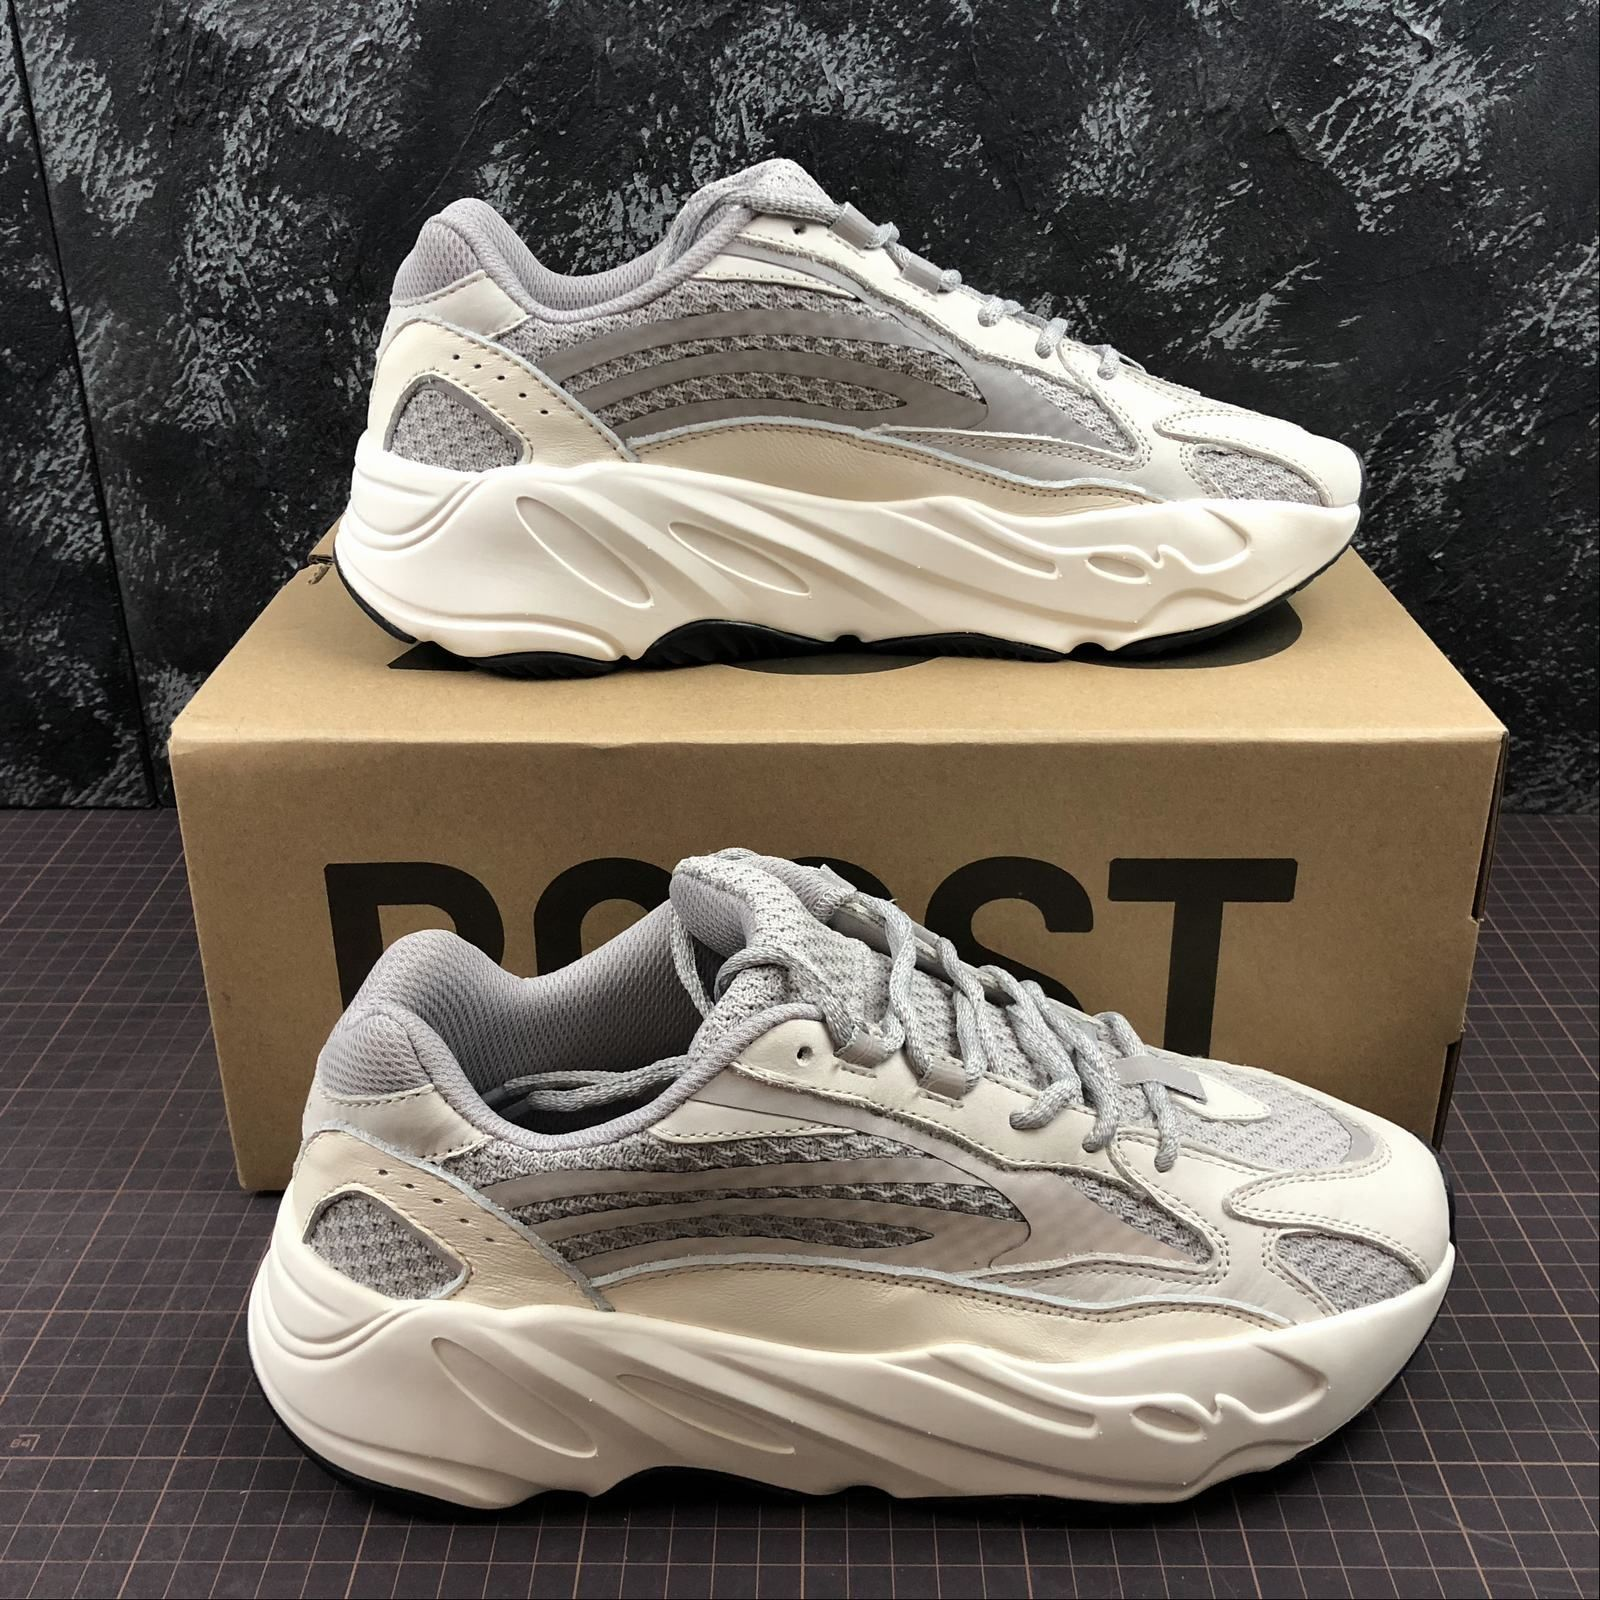 a6a82a98485e7 Adidas Yeezy 700 Wave Runner v2 Static  EF2829 in 2019